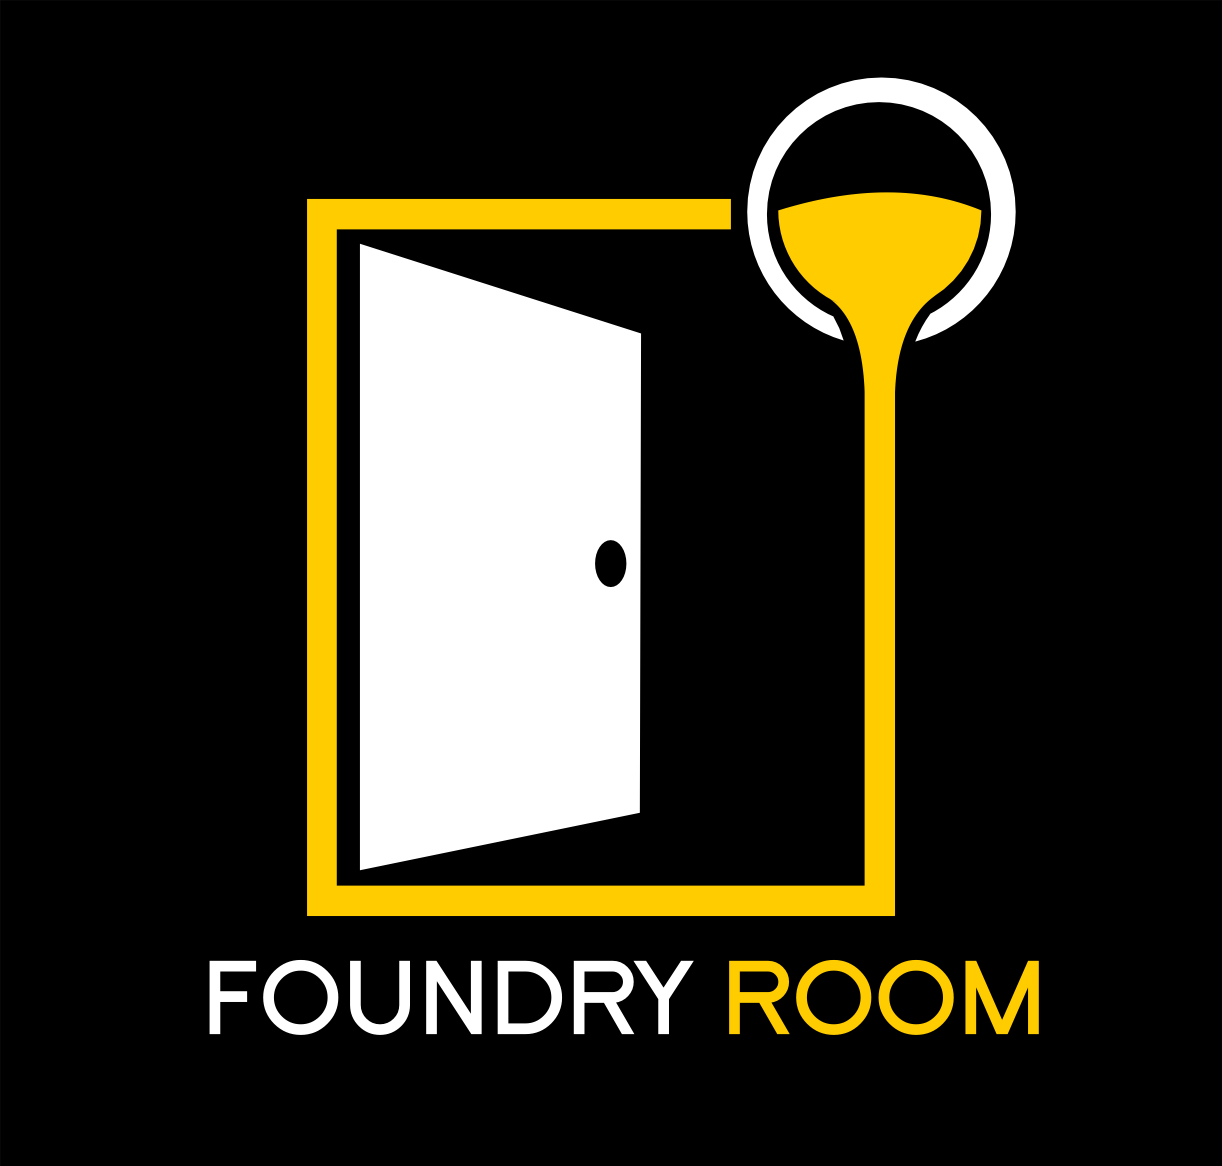 FoundryRoom - OFFICIAL - Color.png